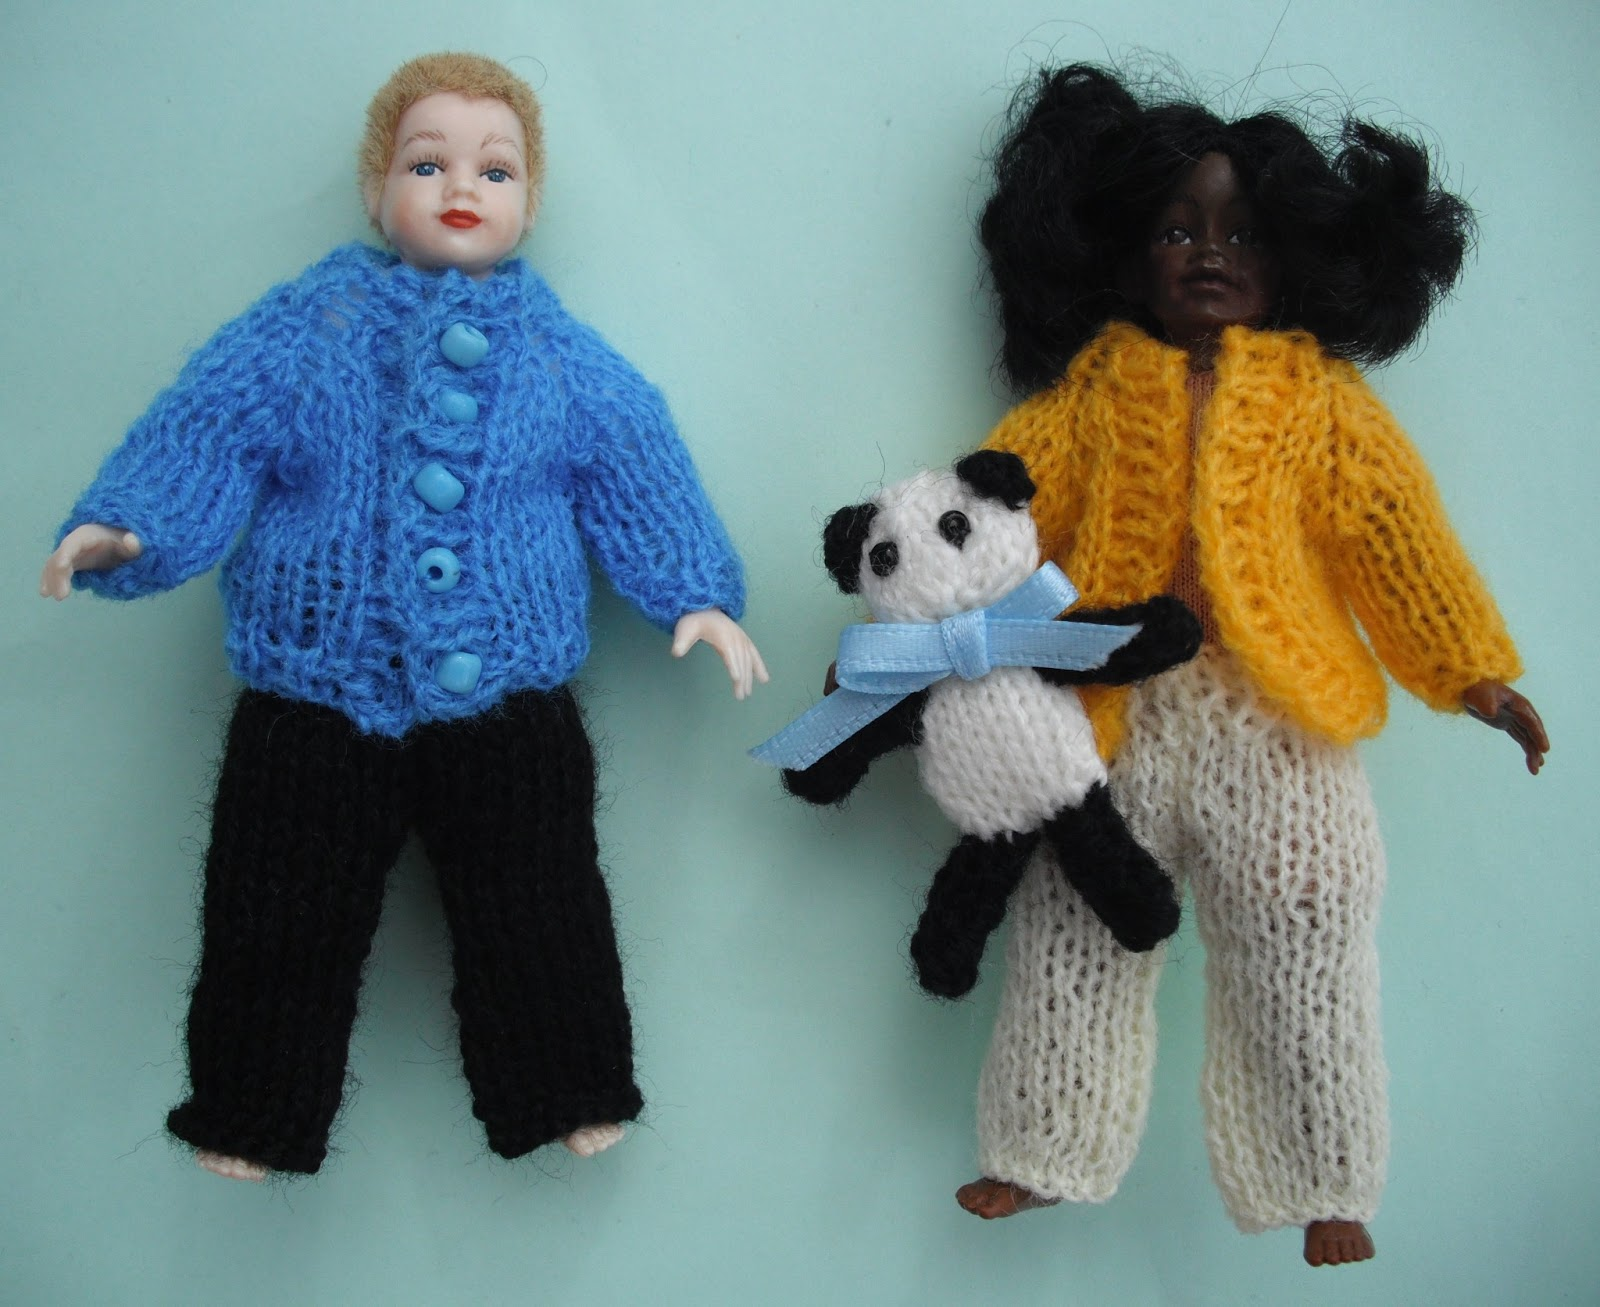 Knitting Pattern For Dolls Trousers : bitstobuy: Another FREE knitting pattern in dolls house scale - Child Trousers